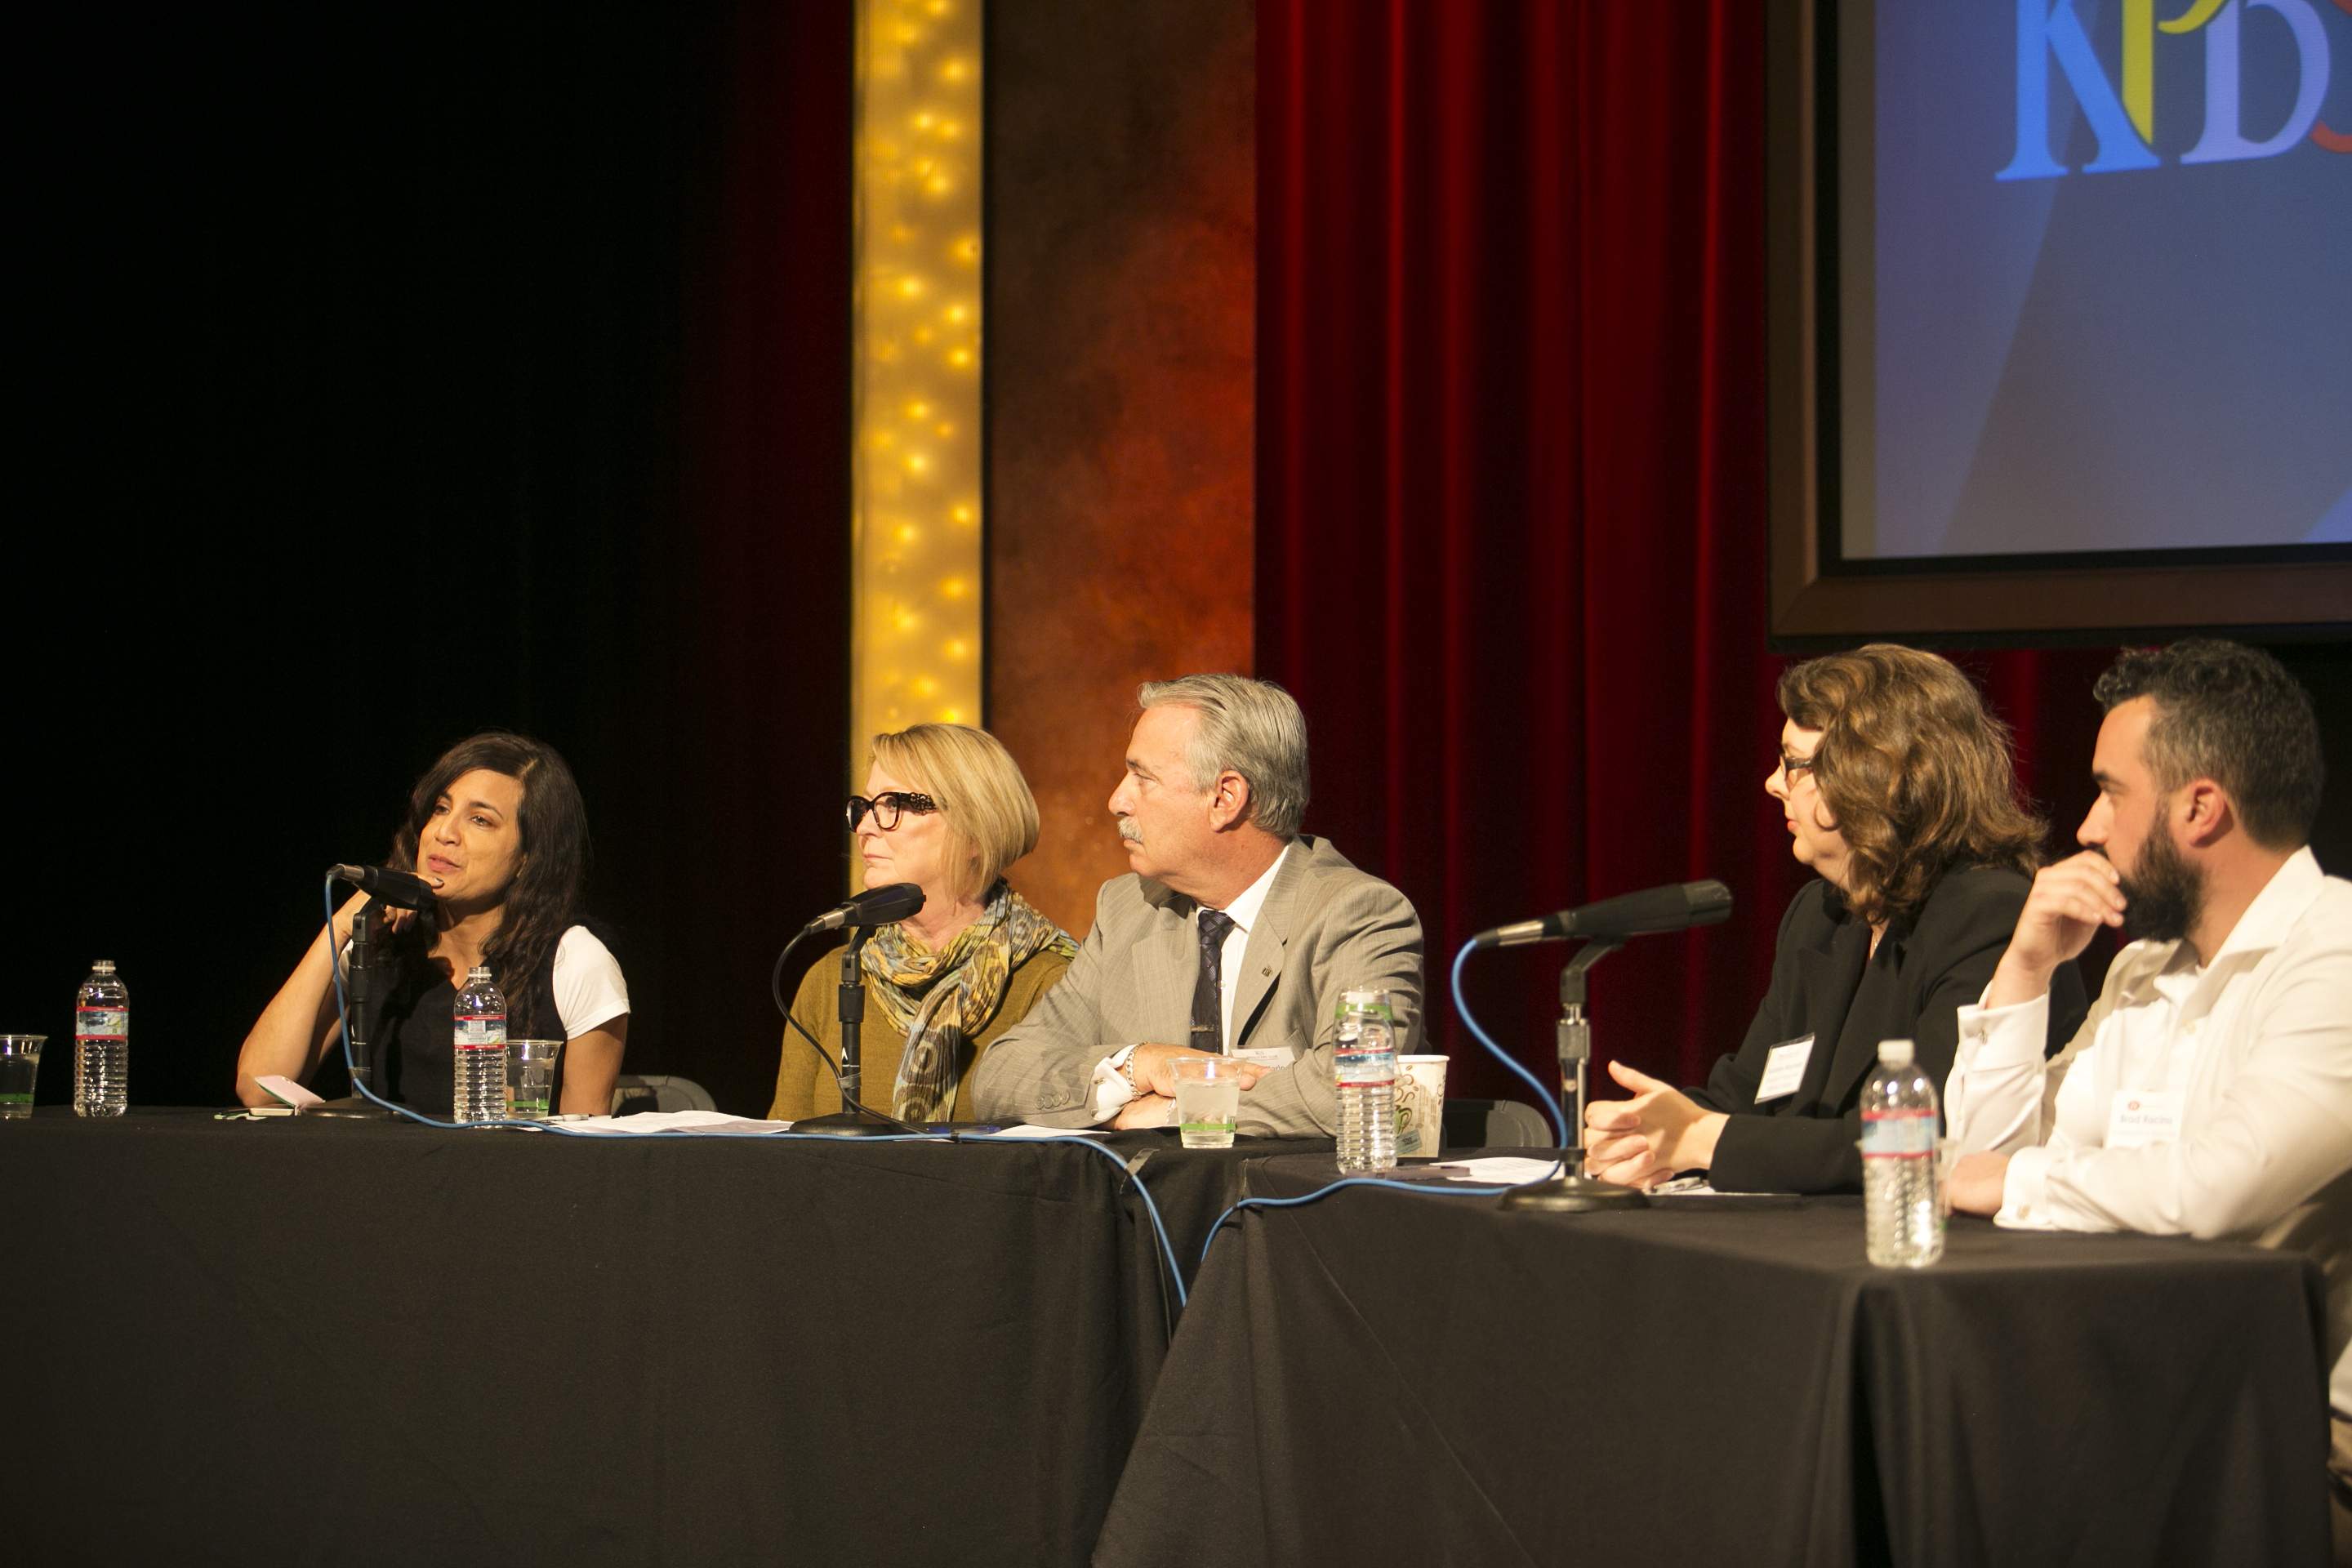 KPBS LunchHour Panel on Investigative Reporting